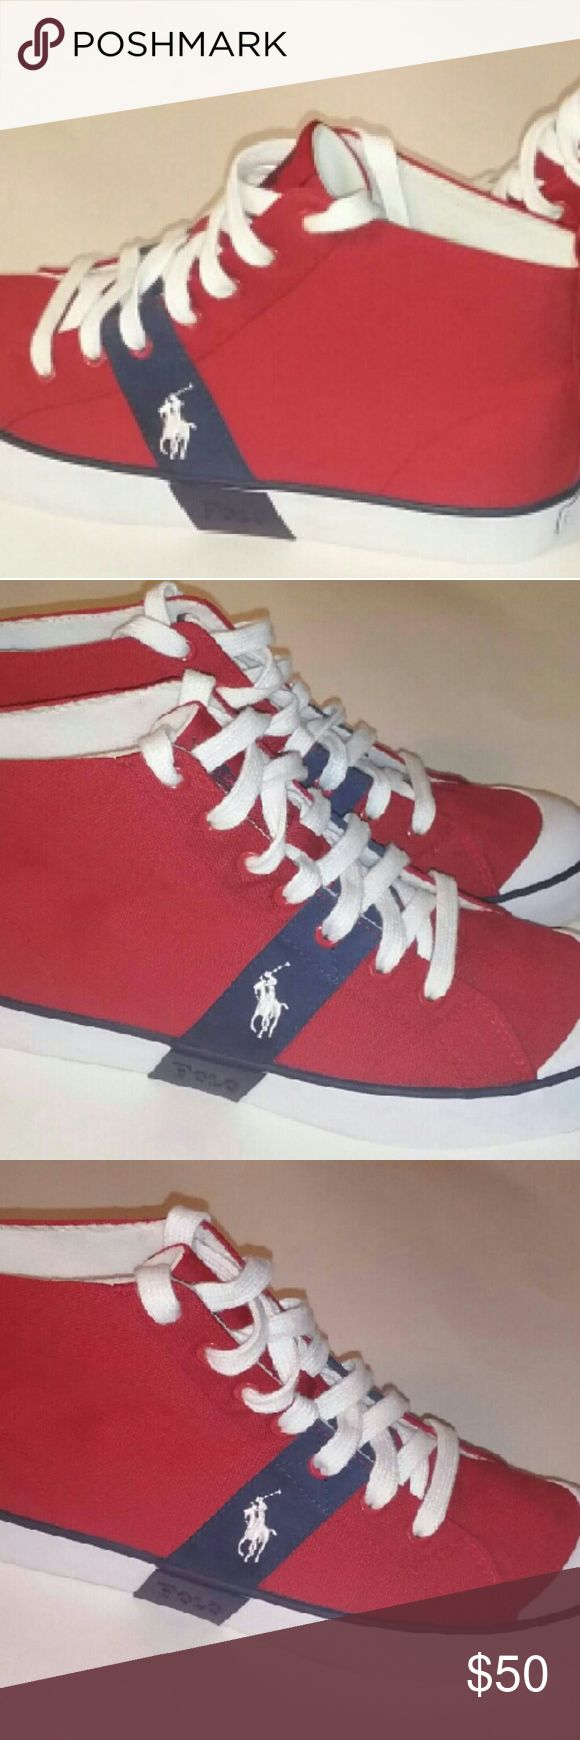 Polo raph Lauren Polo raph lauren polo raph Lauren  Shoes Athletic Shoes